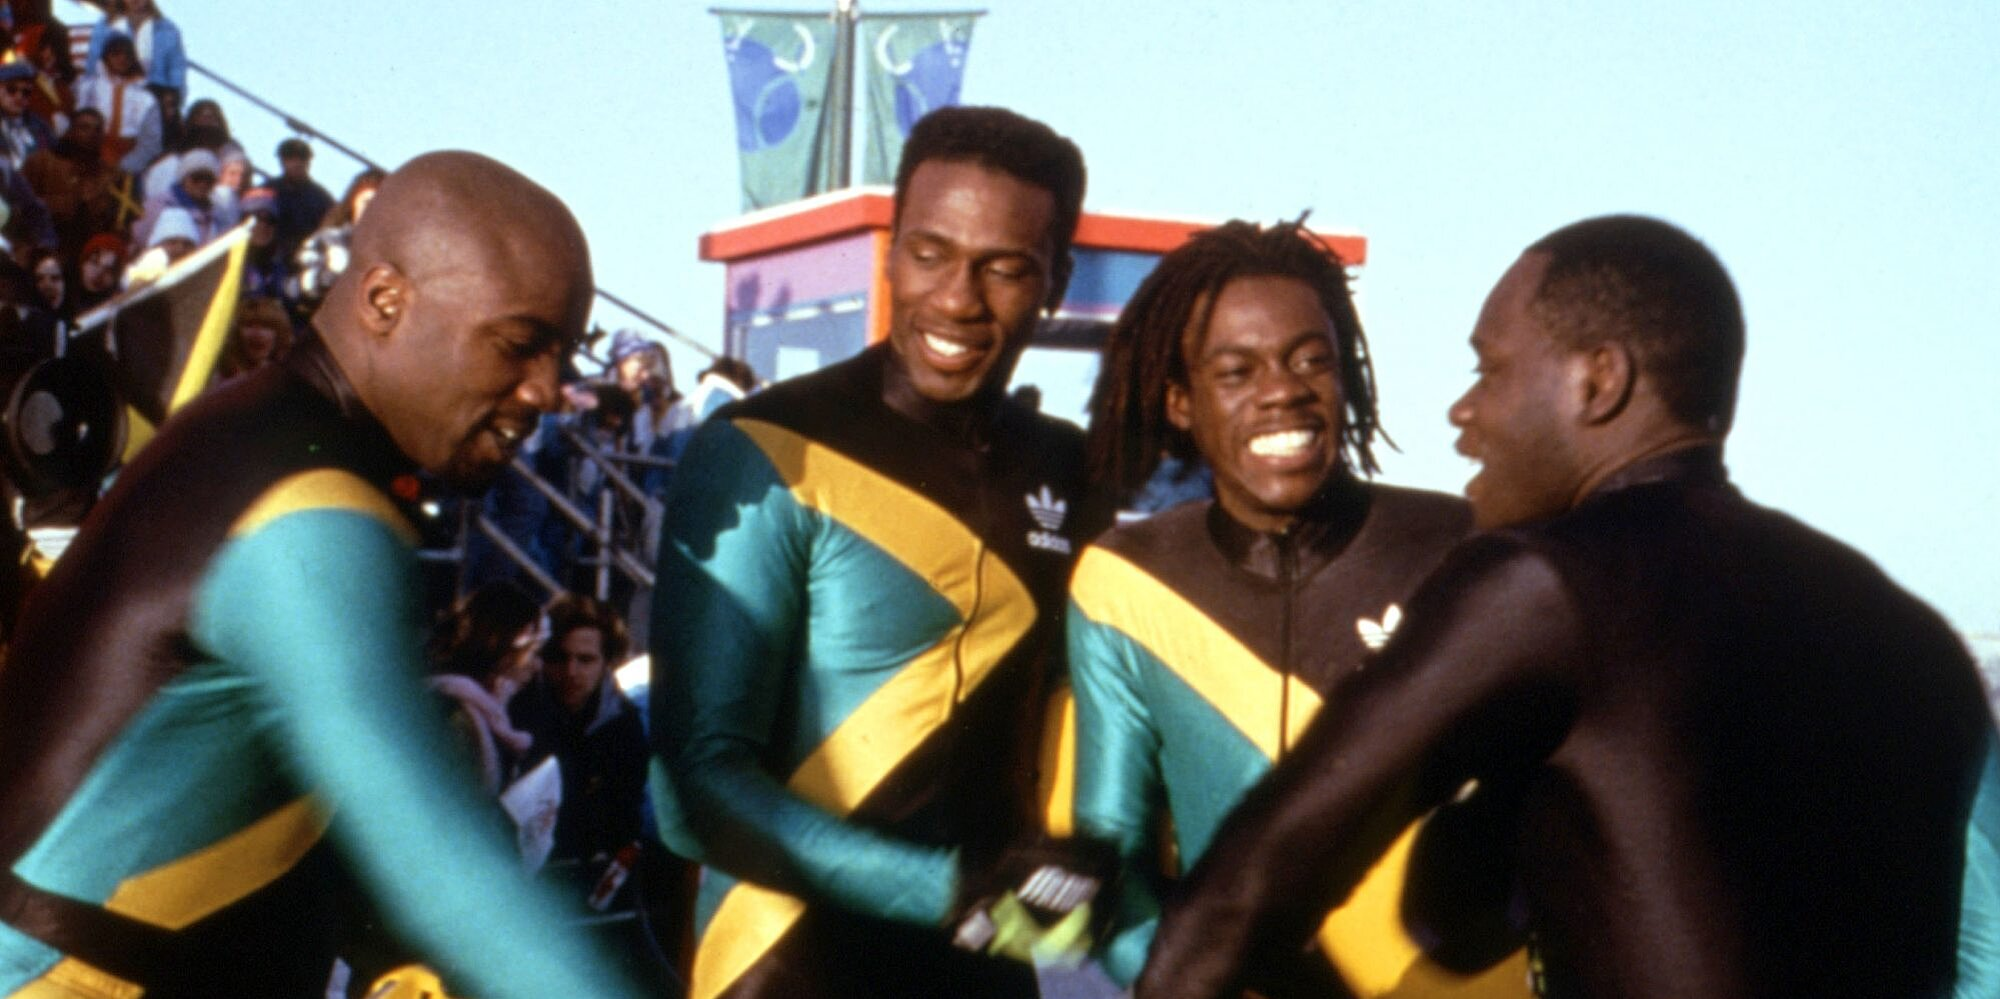 image 10 Cool Facts You Probably Never Knew About Cool Runnings!